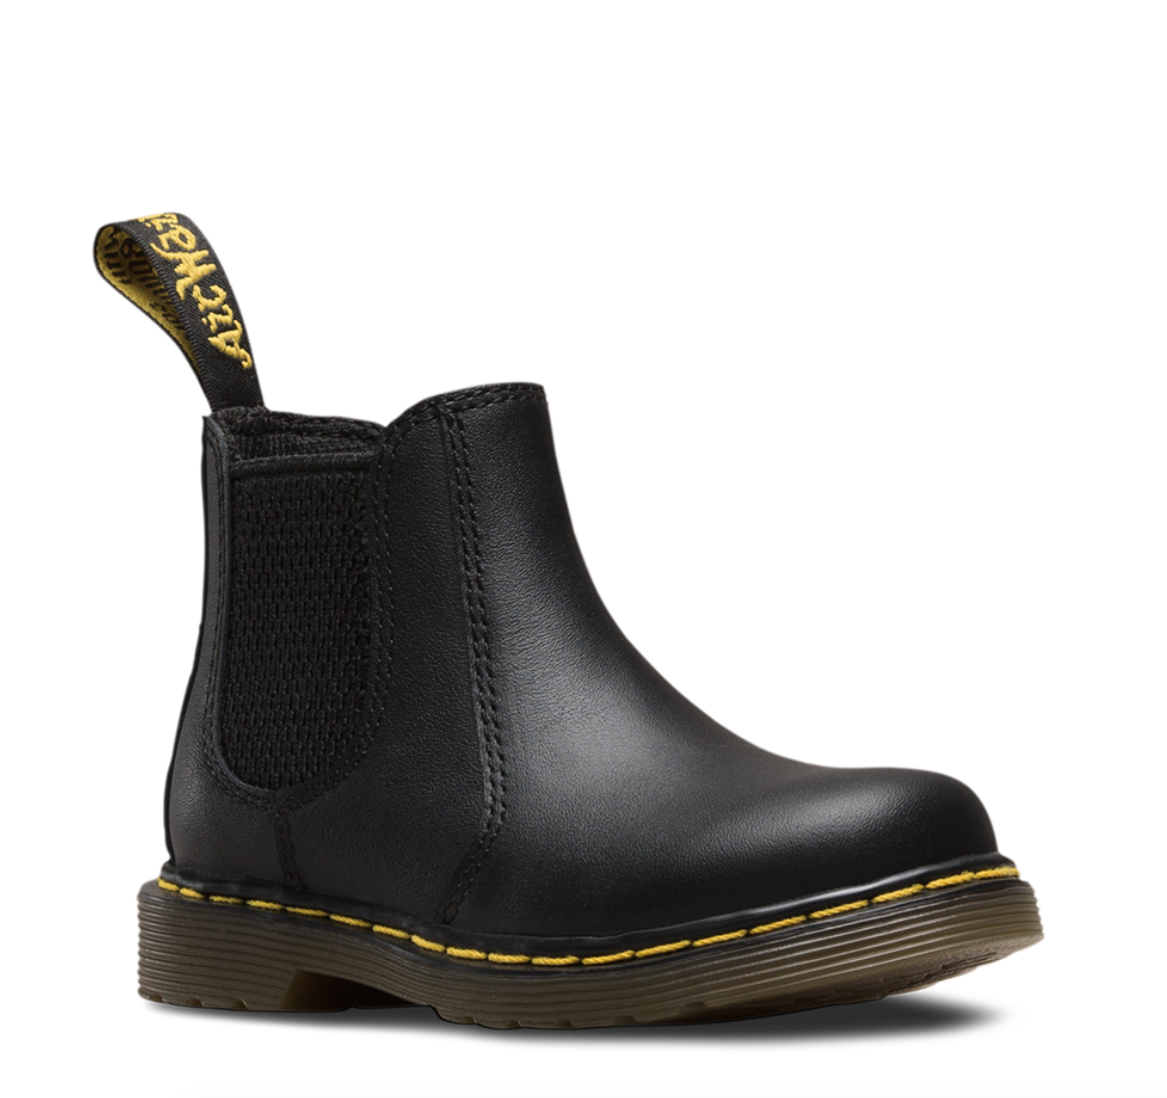 Dr. Martens Kid's Chelsea Casual Boots Black Leather 8 Toddler M UK 9 M by Dr. MARTENS